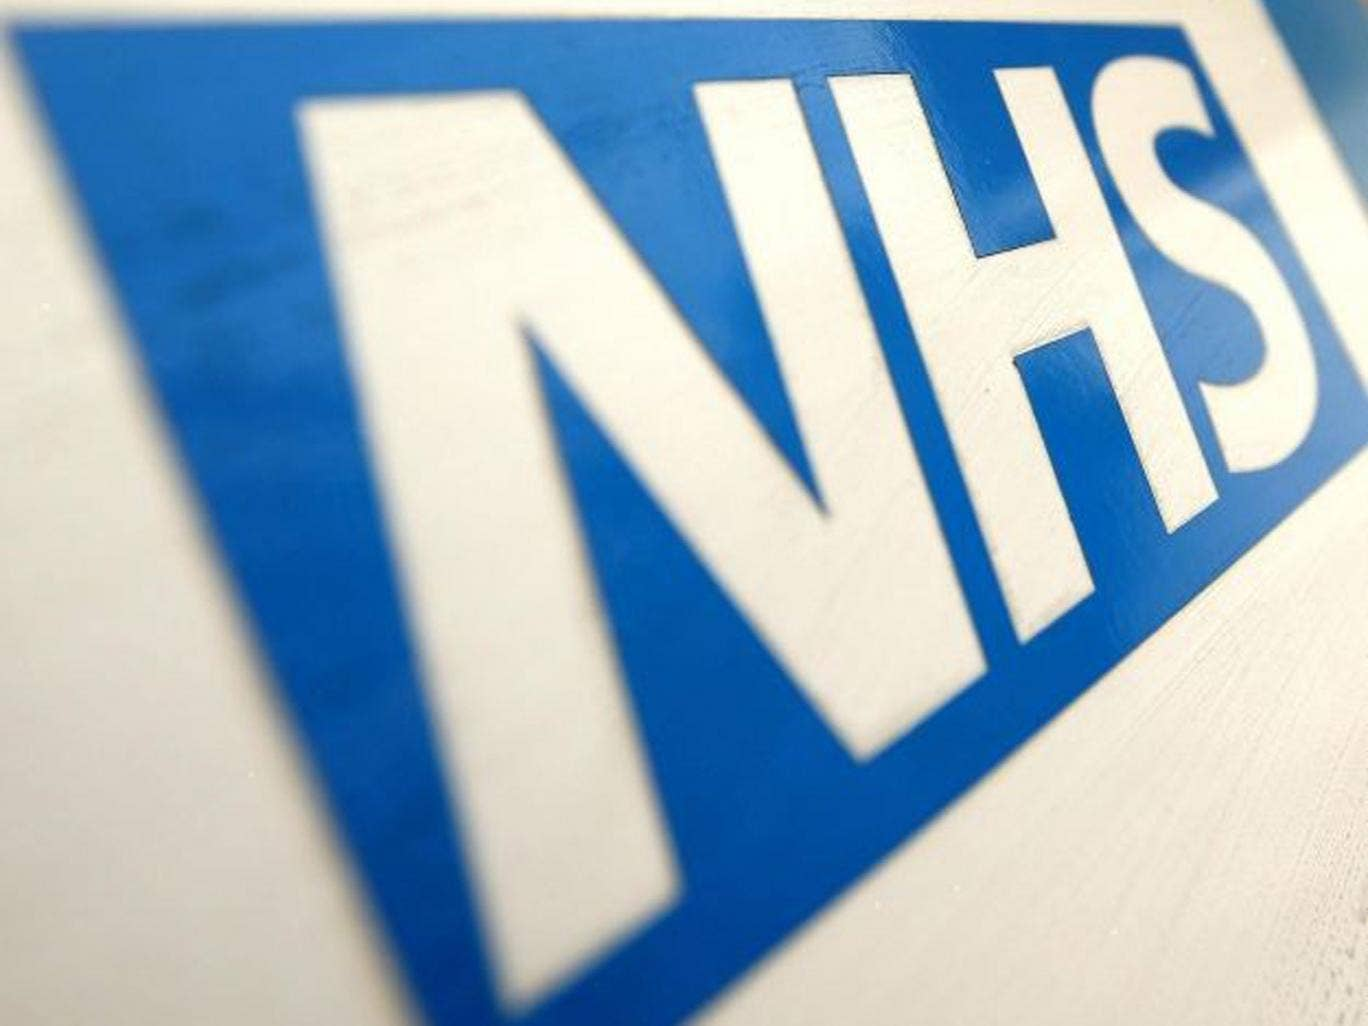 Regional pilots of the NHS's new non-emergency hotline have reported big problems